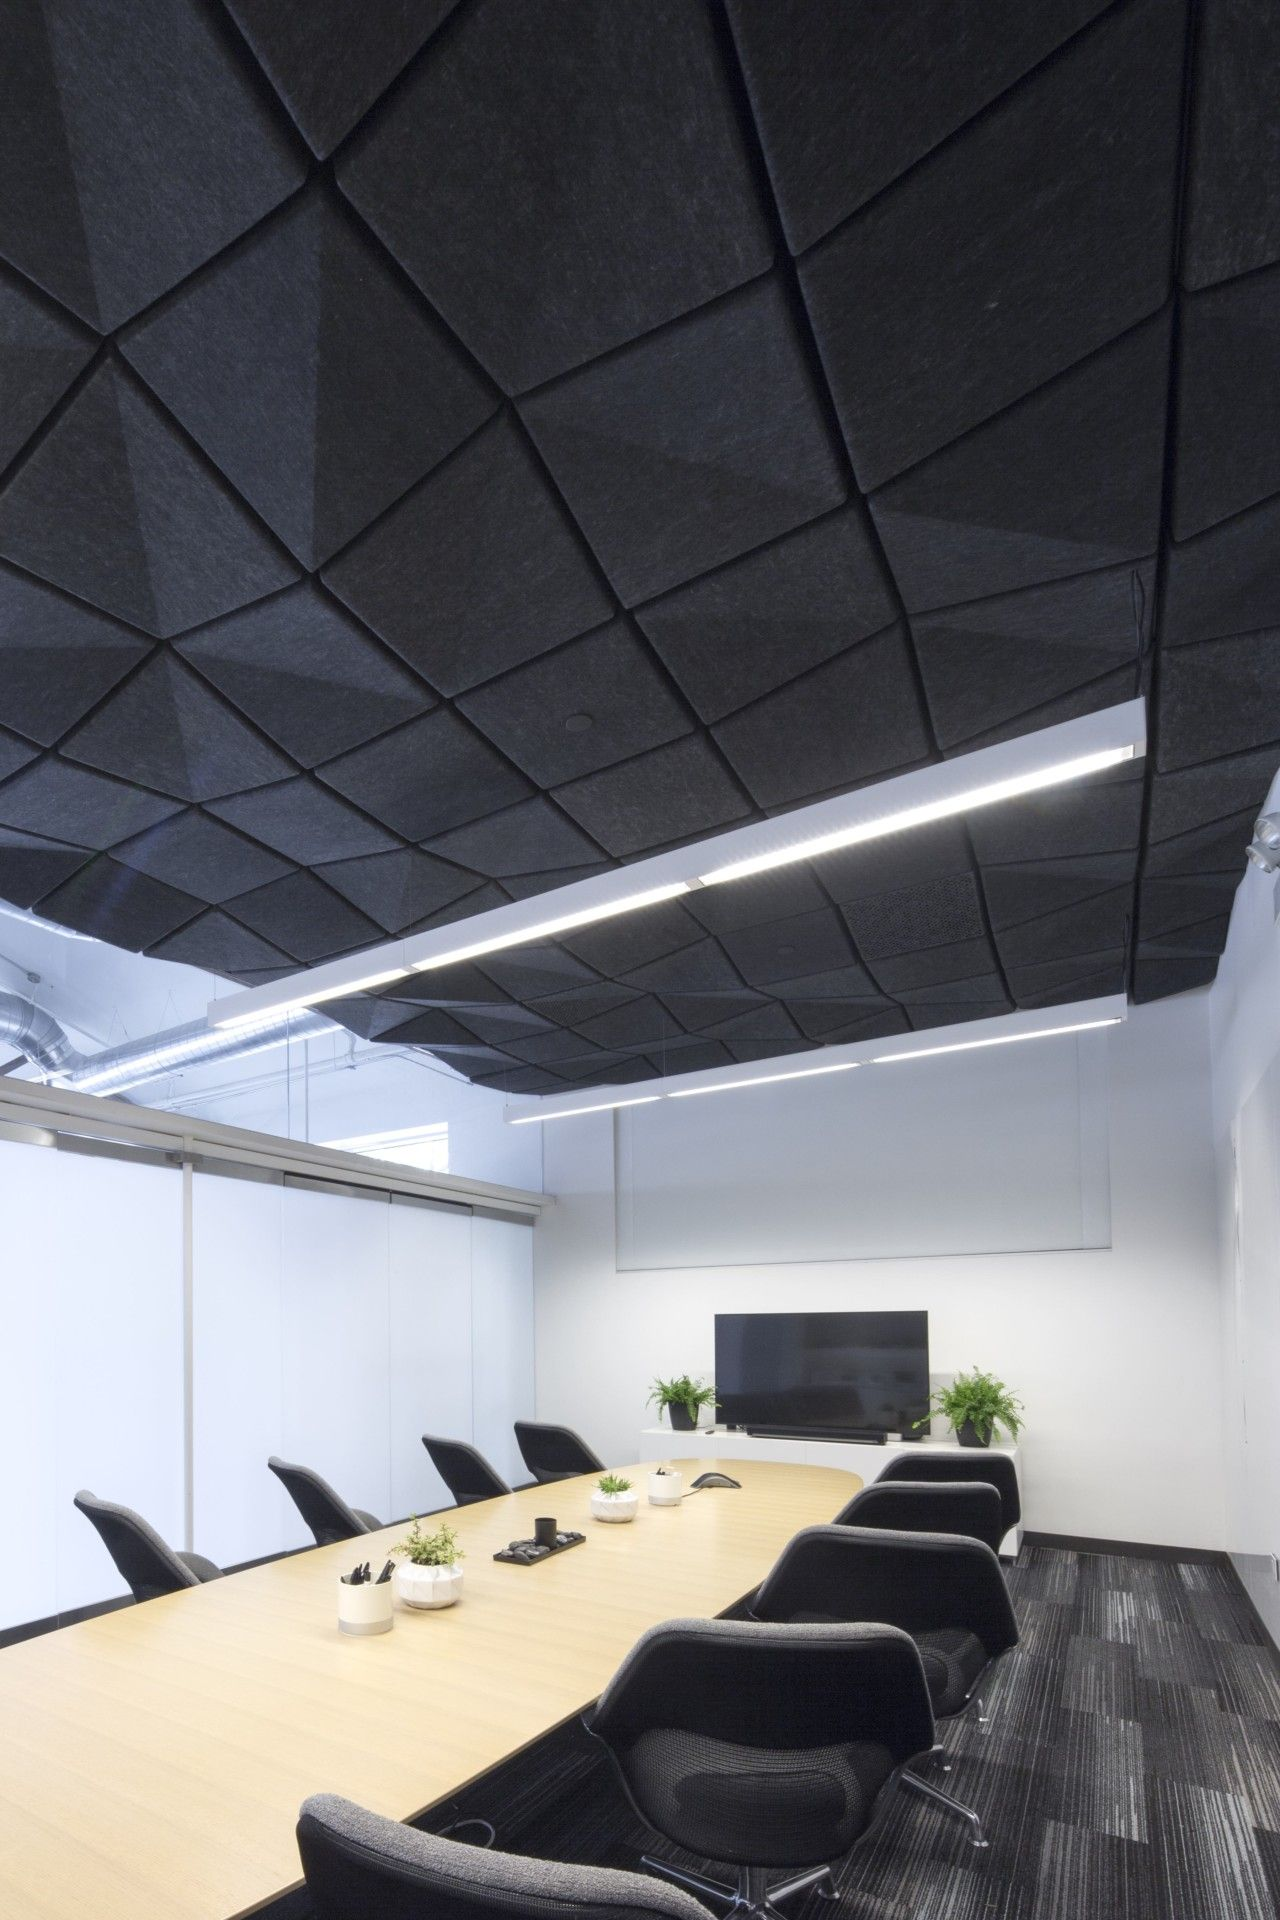 Crease A Range Of Modular Acoustic Ceiling Tiles By Turf Design